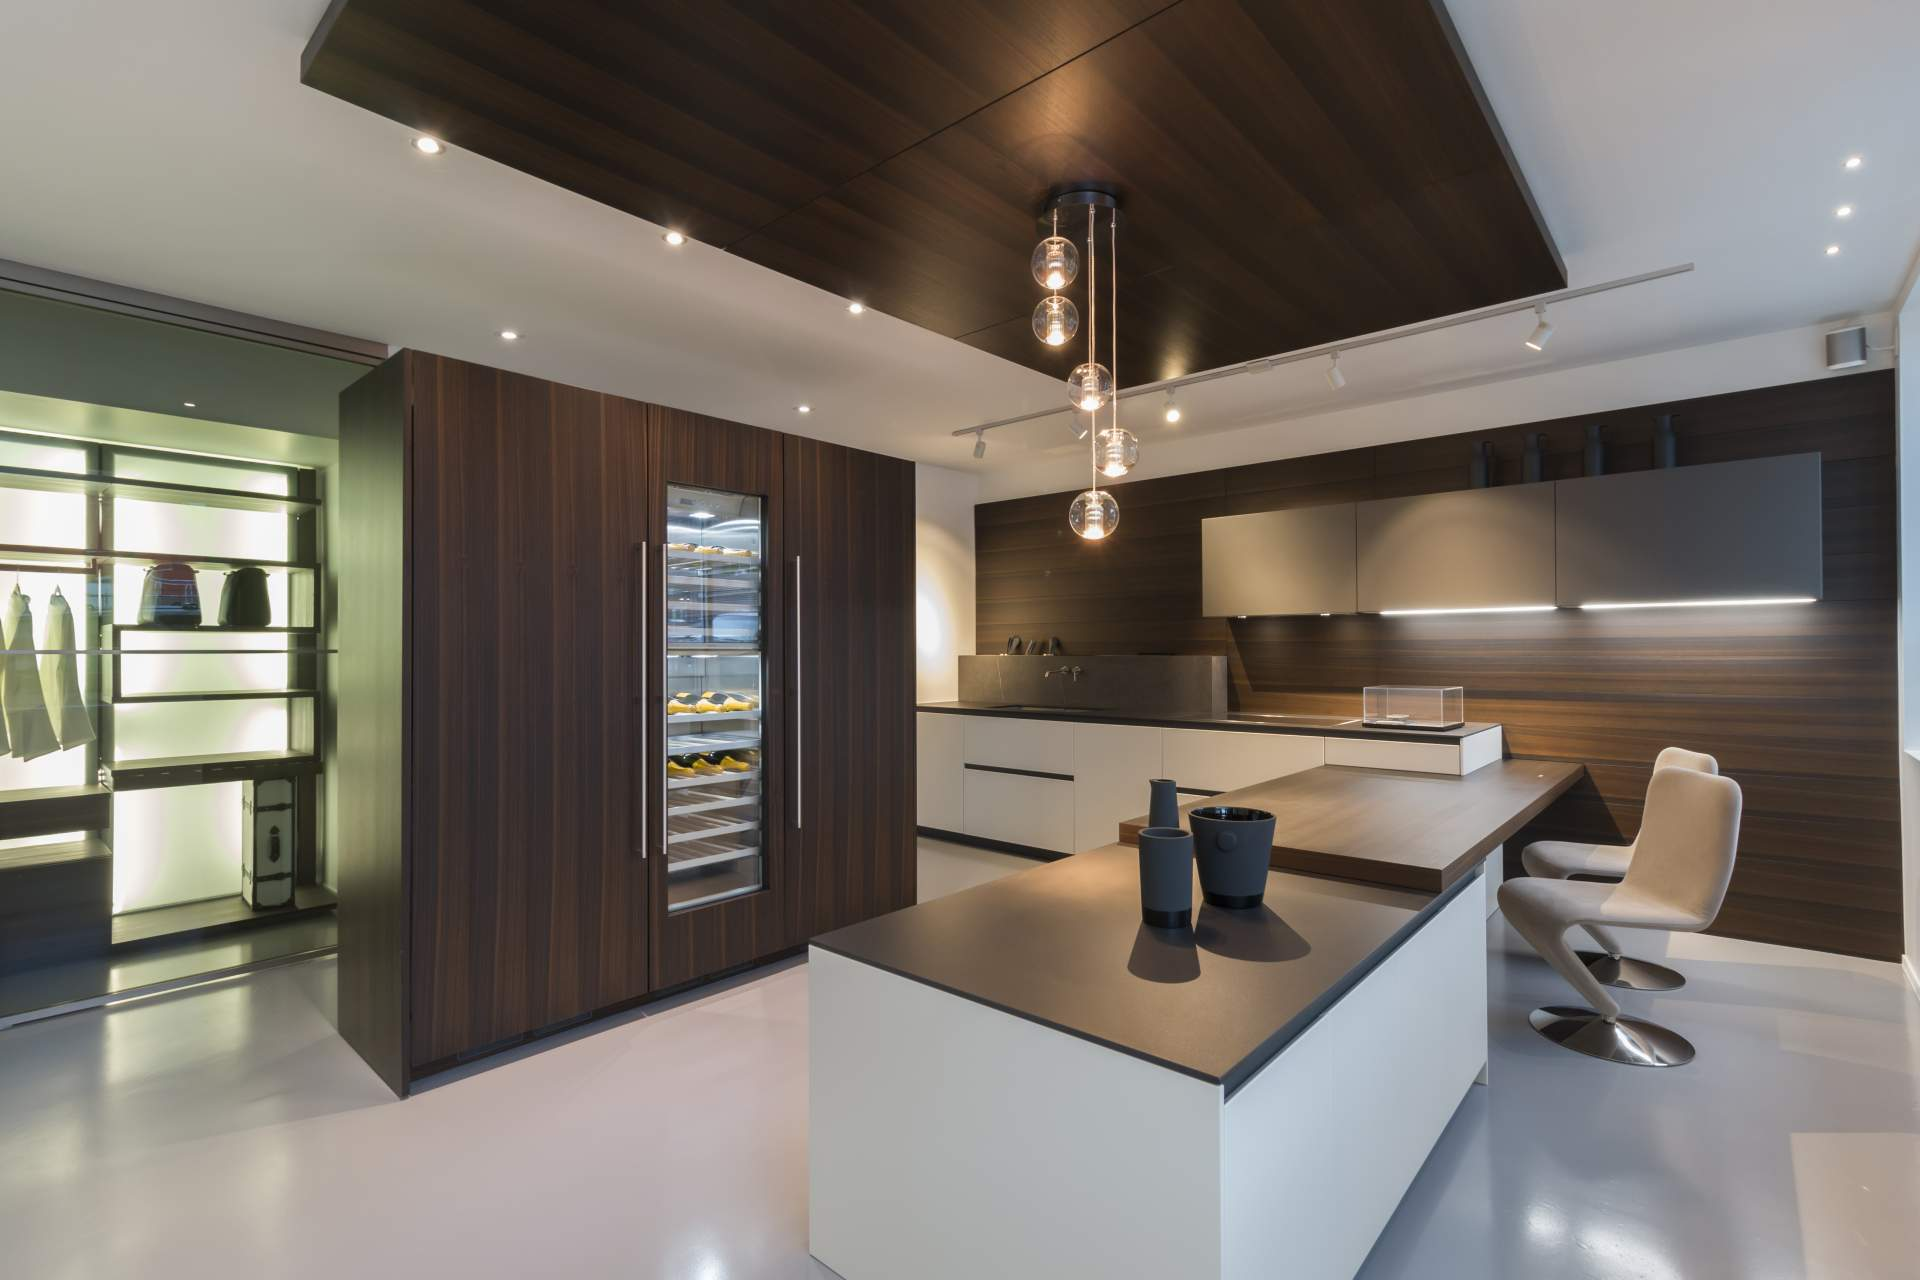 Habitat By Aeon Vancouver Luxury Kitchen Cabinets